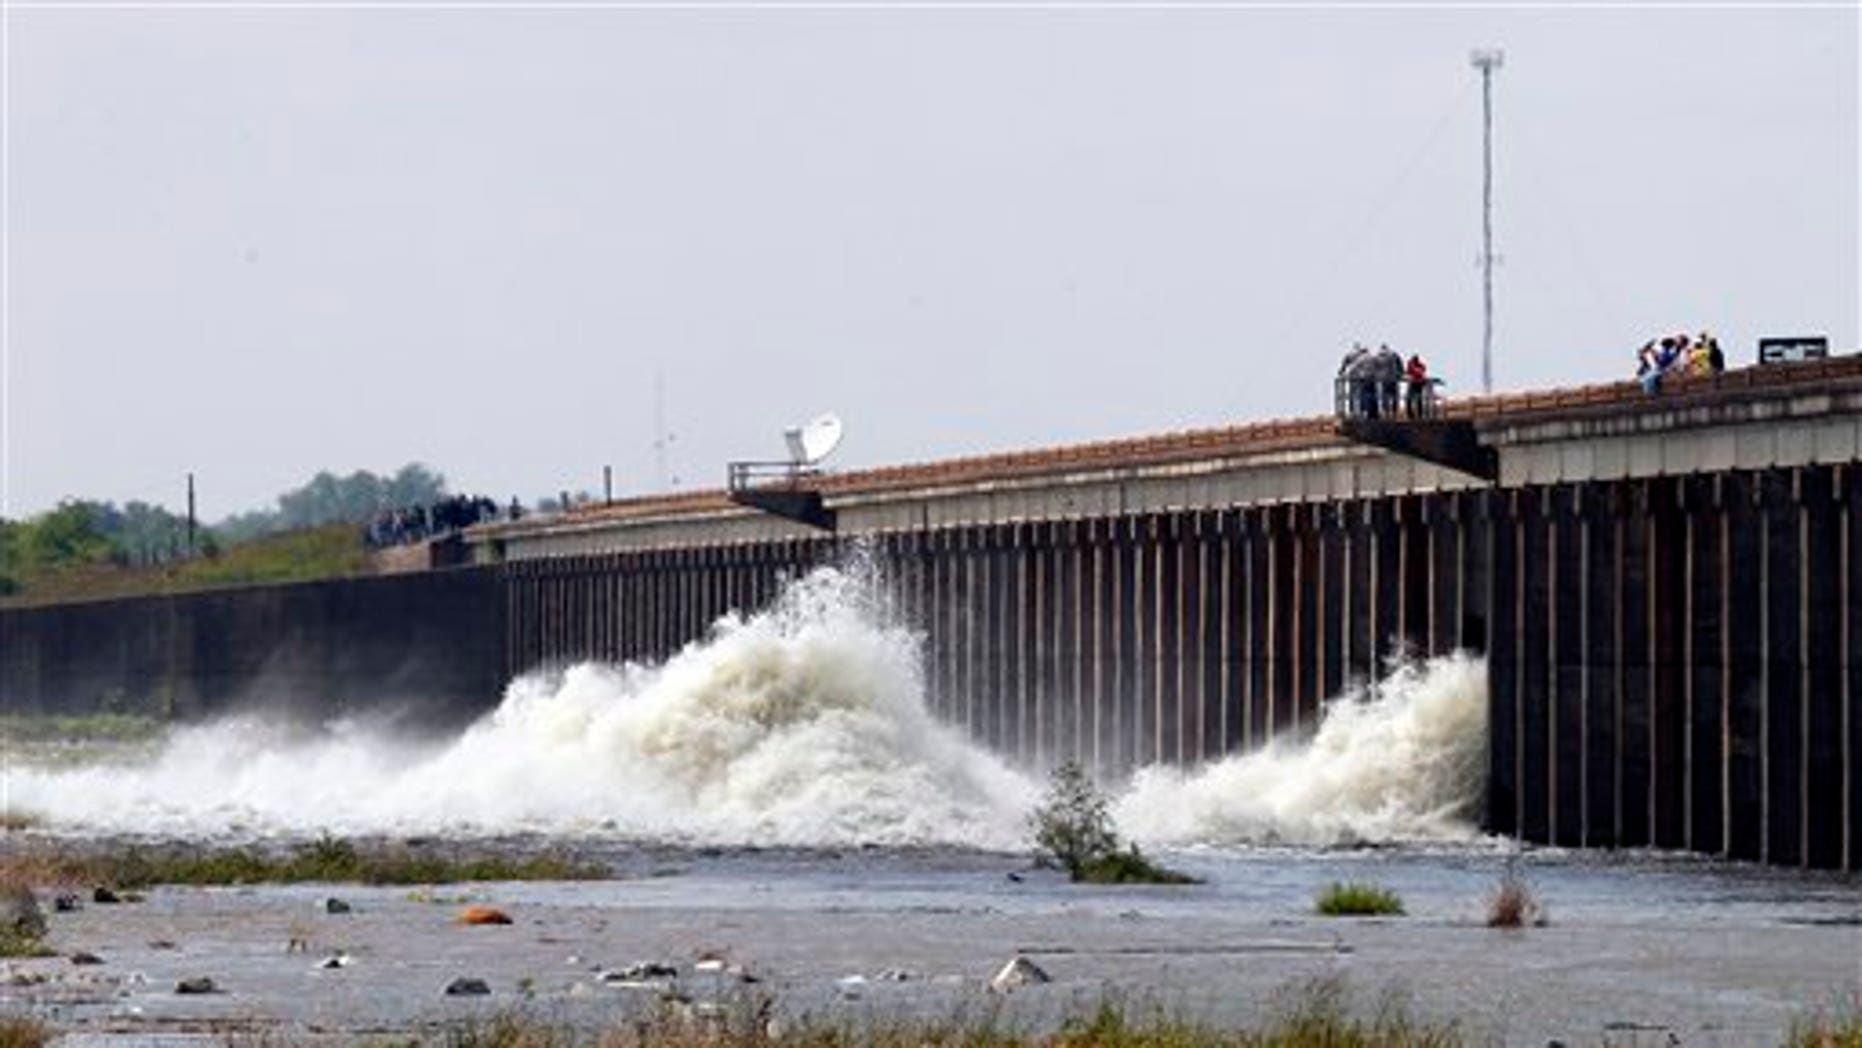 May 14: Water diverted from the Mississippi River spills through a bay in the Morganza Spillway in Morganza, La. A steel, 10-ton floodgate was slowly raised Saturday for the first time in nearly four decades, unleashing a torrent of water from the Mississippi River, away from heavily populated areas downstream. (AP)